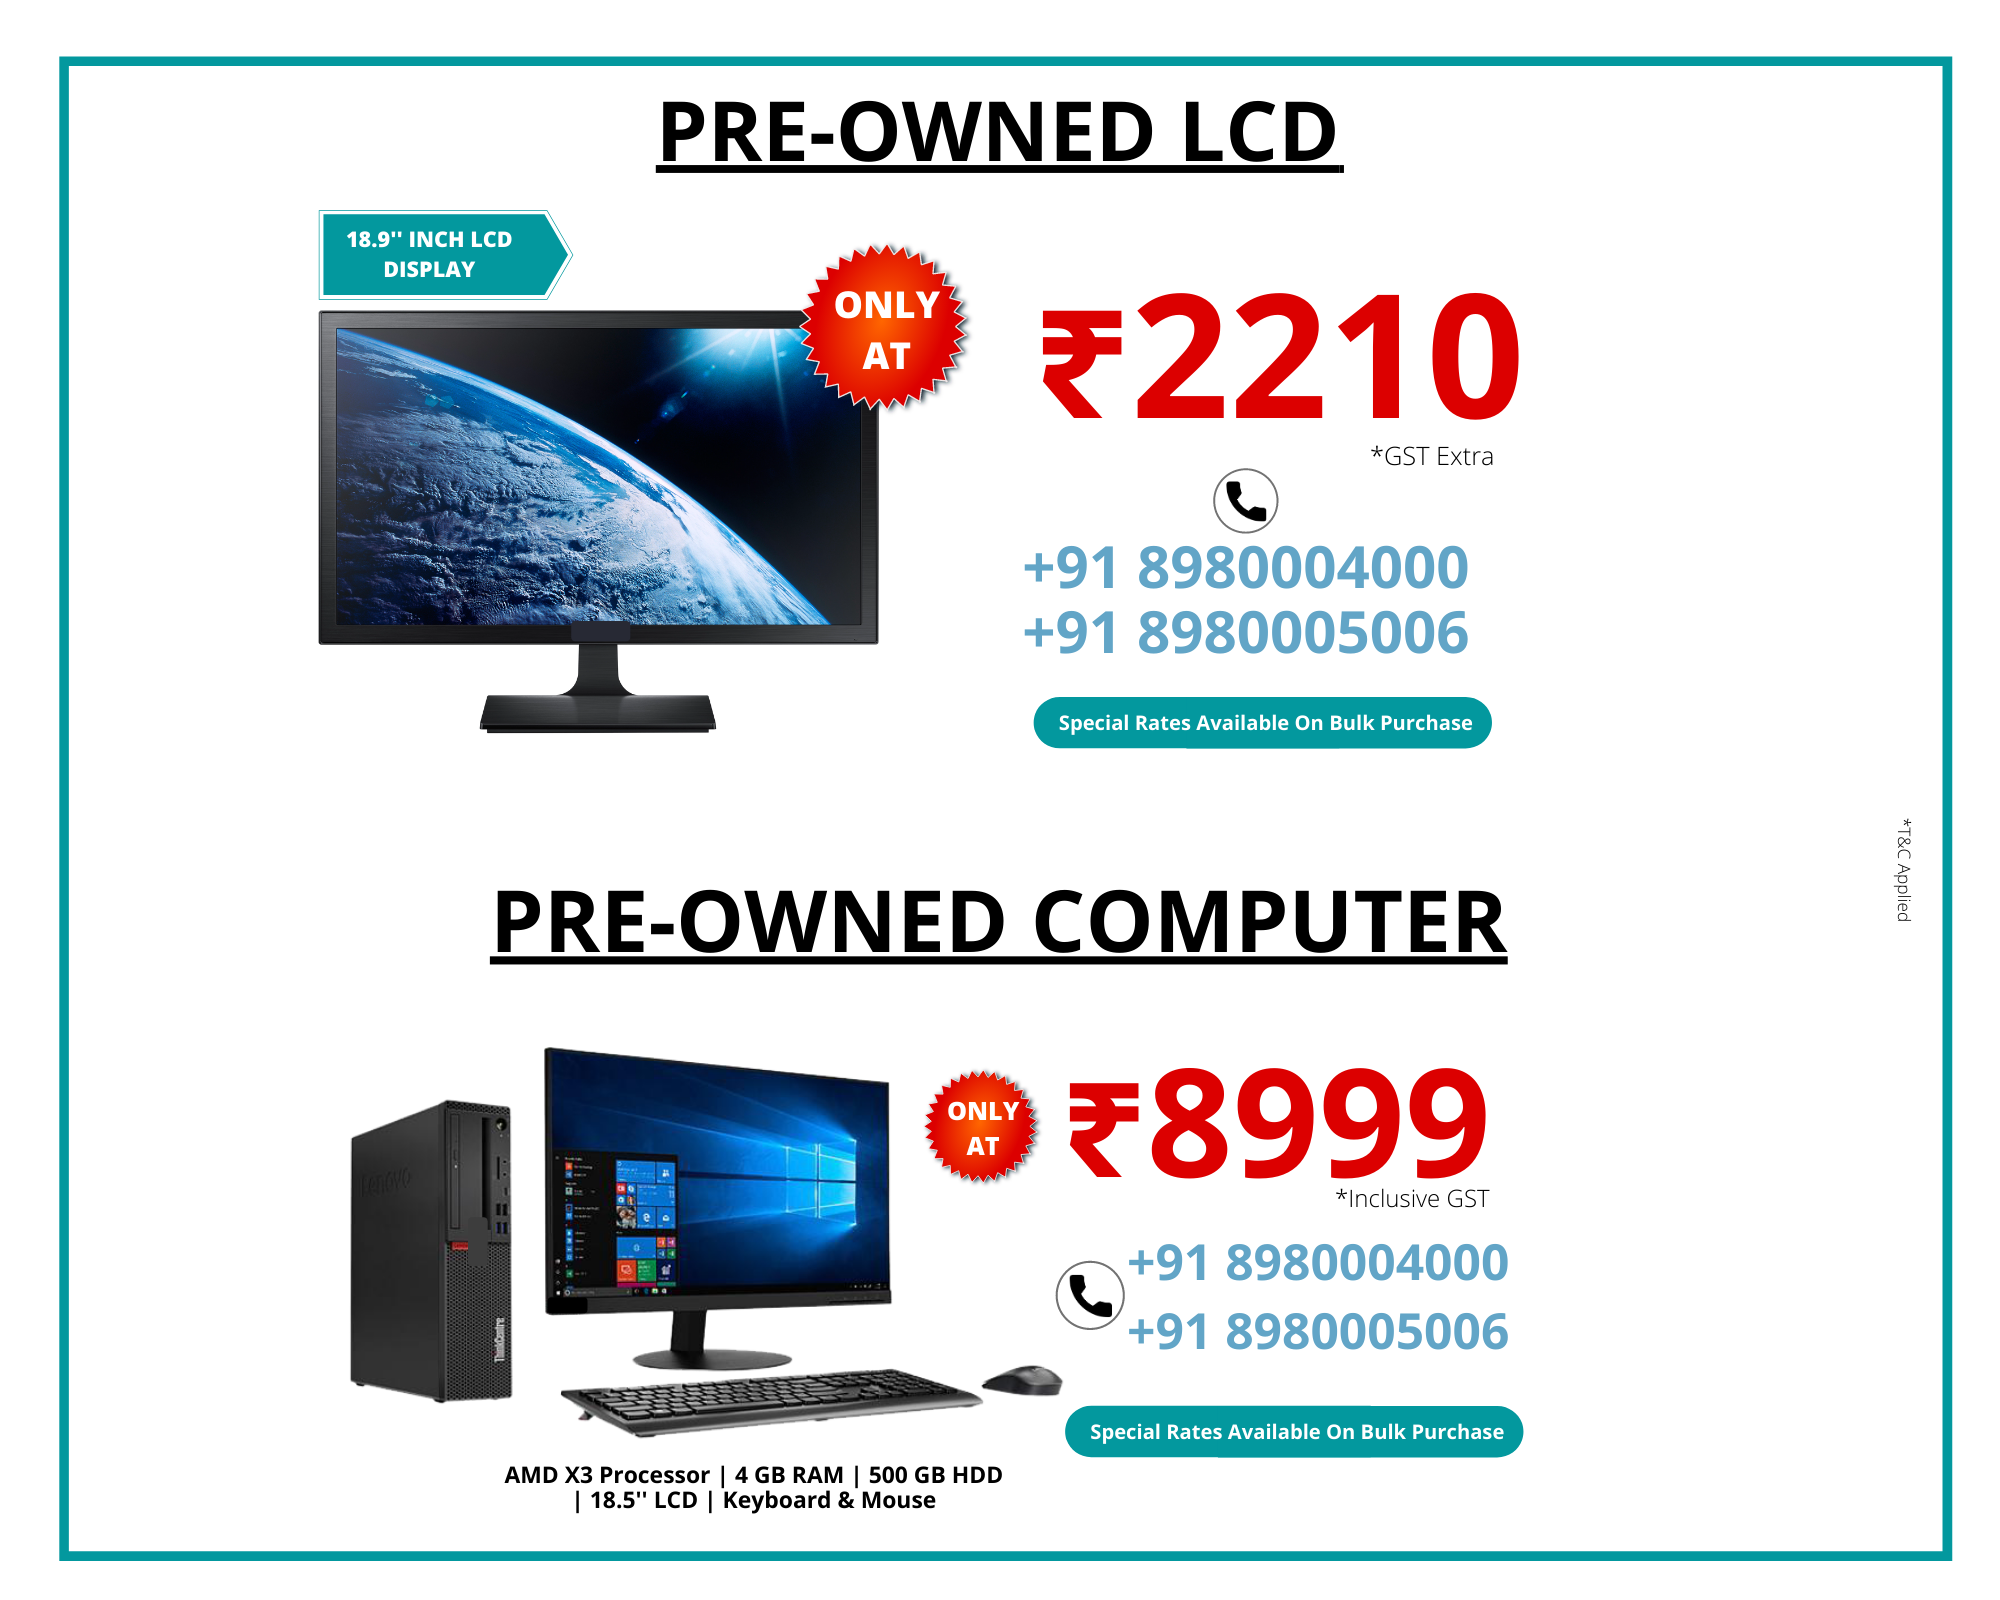 pre-owned product